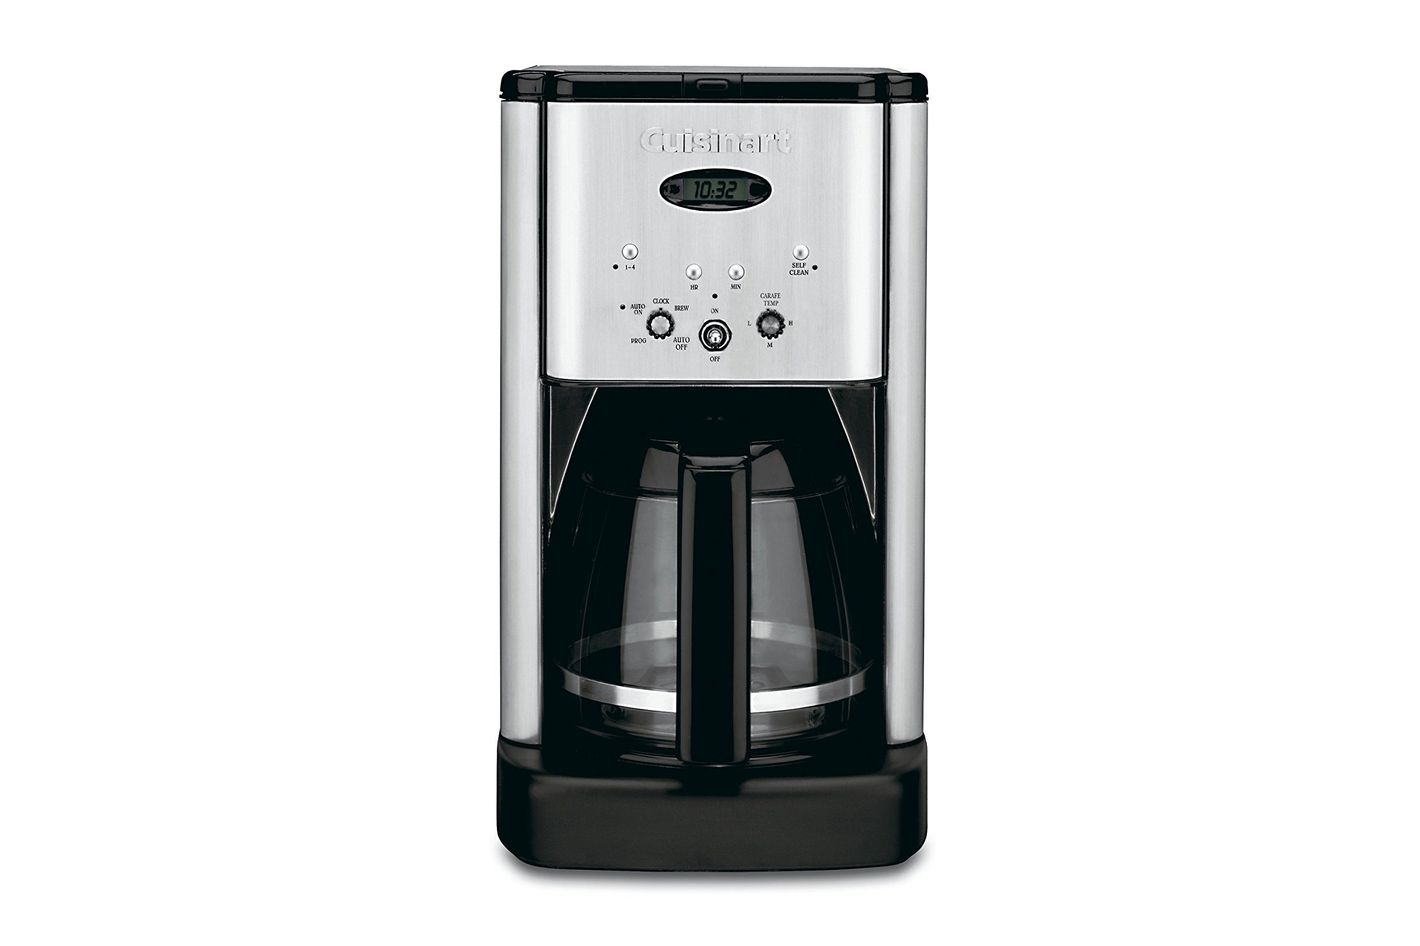 the coffee maker u201c